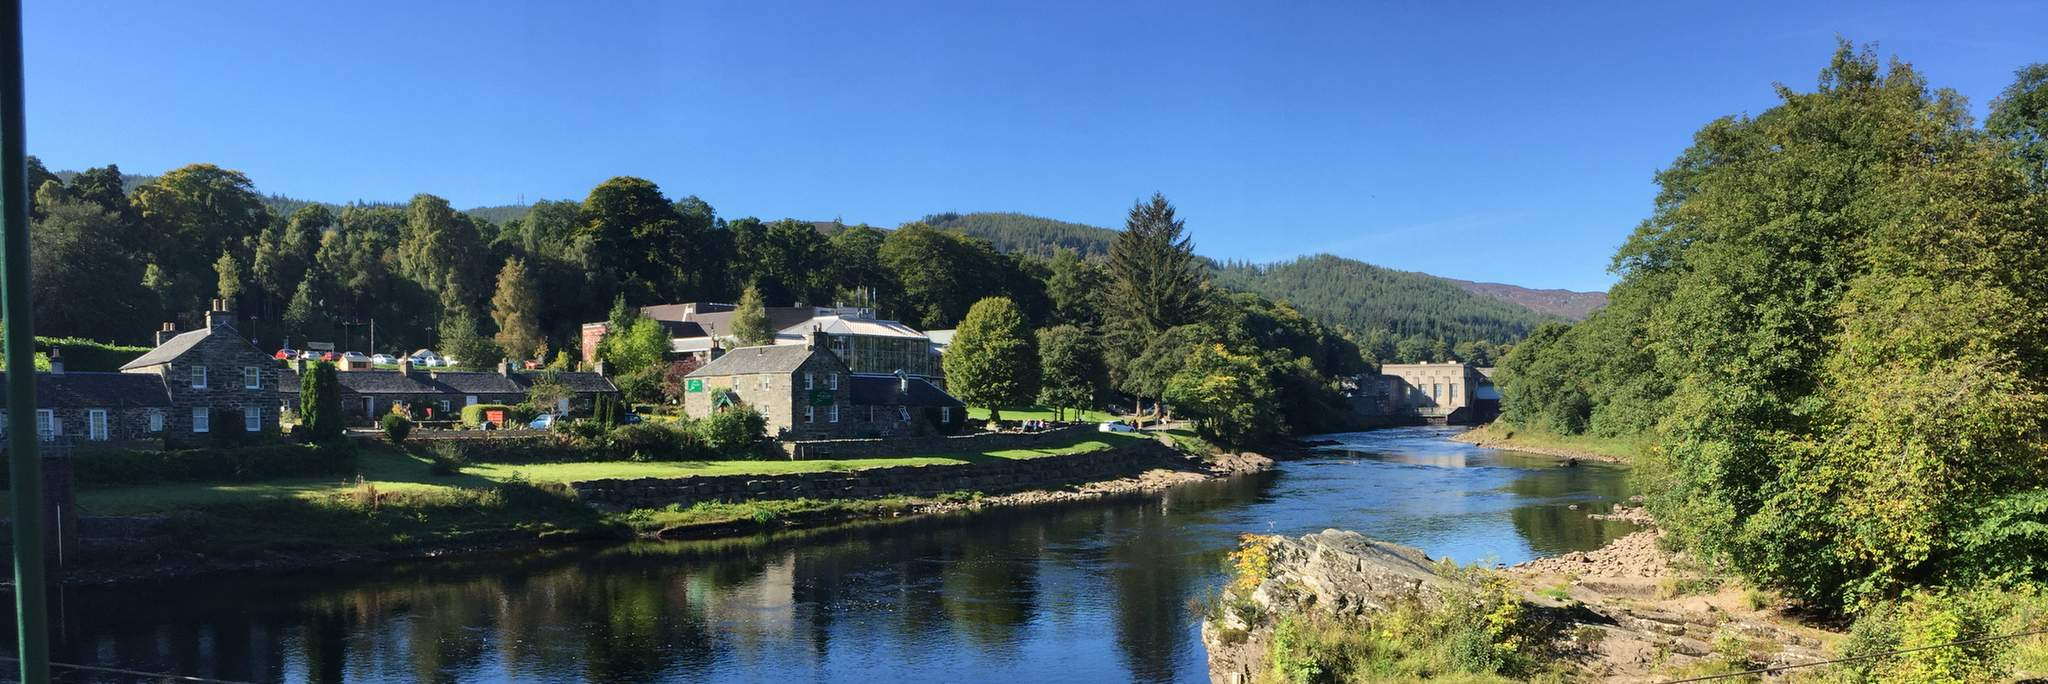 Pitlochry Theatre and Dam, Perthshire